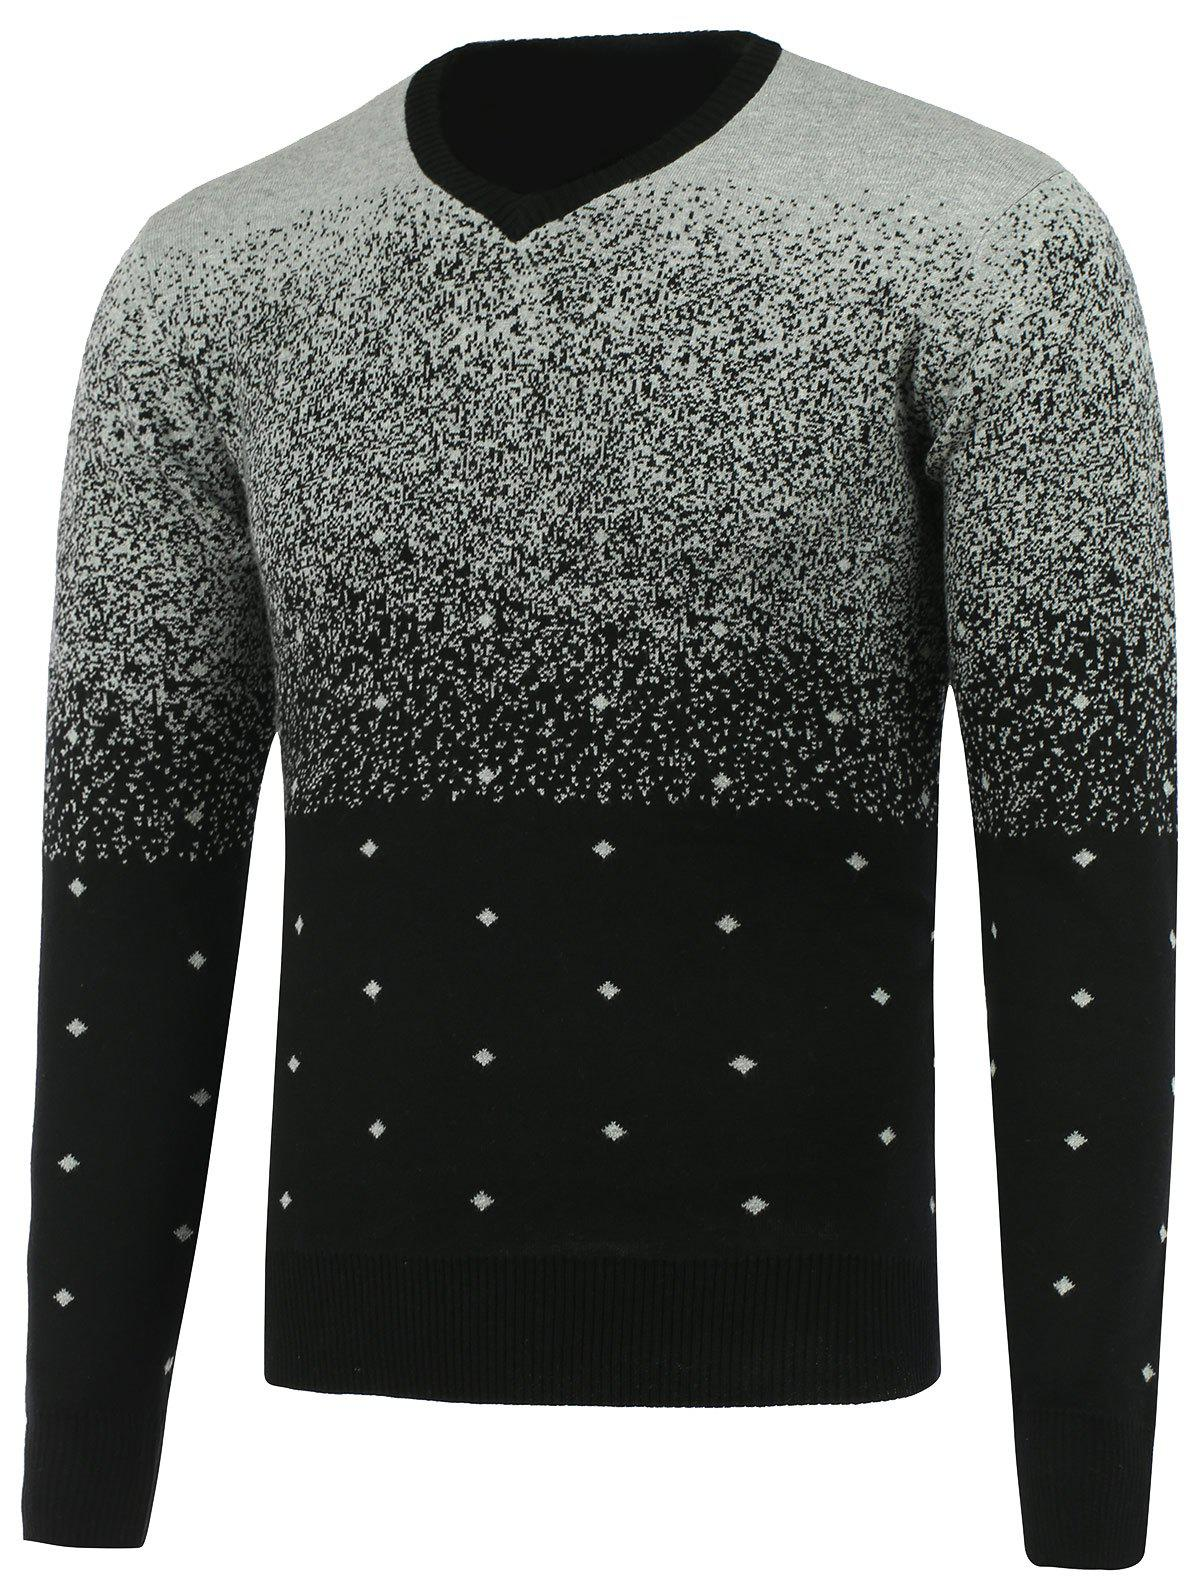 Ombra V Neck Diamond Graphic SweaterMen<br><br><br>Size: ONE SIZE<br>Color: GRAY